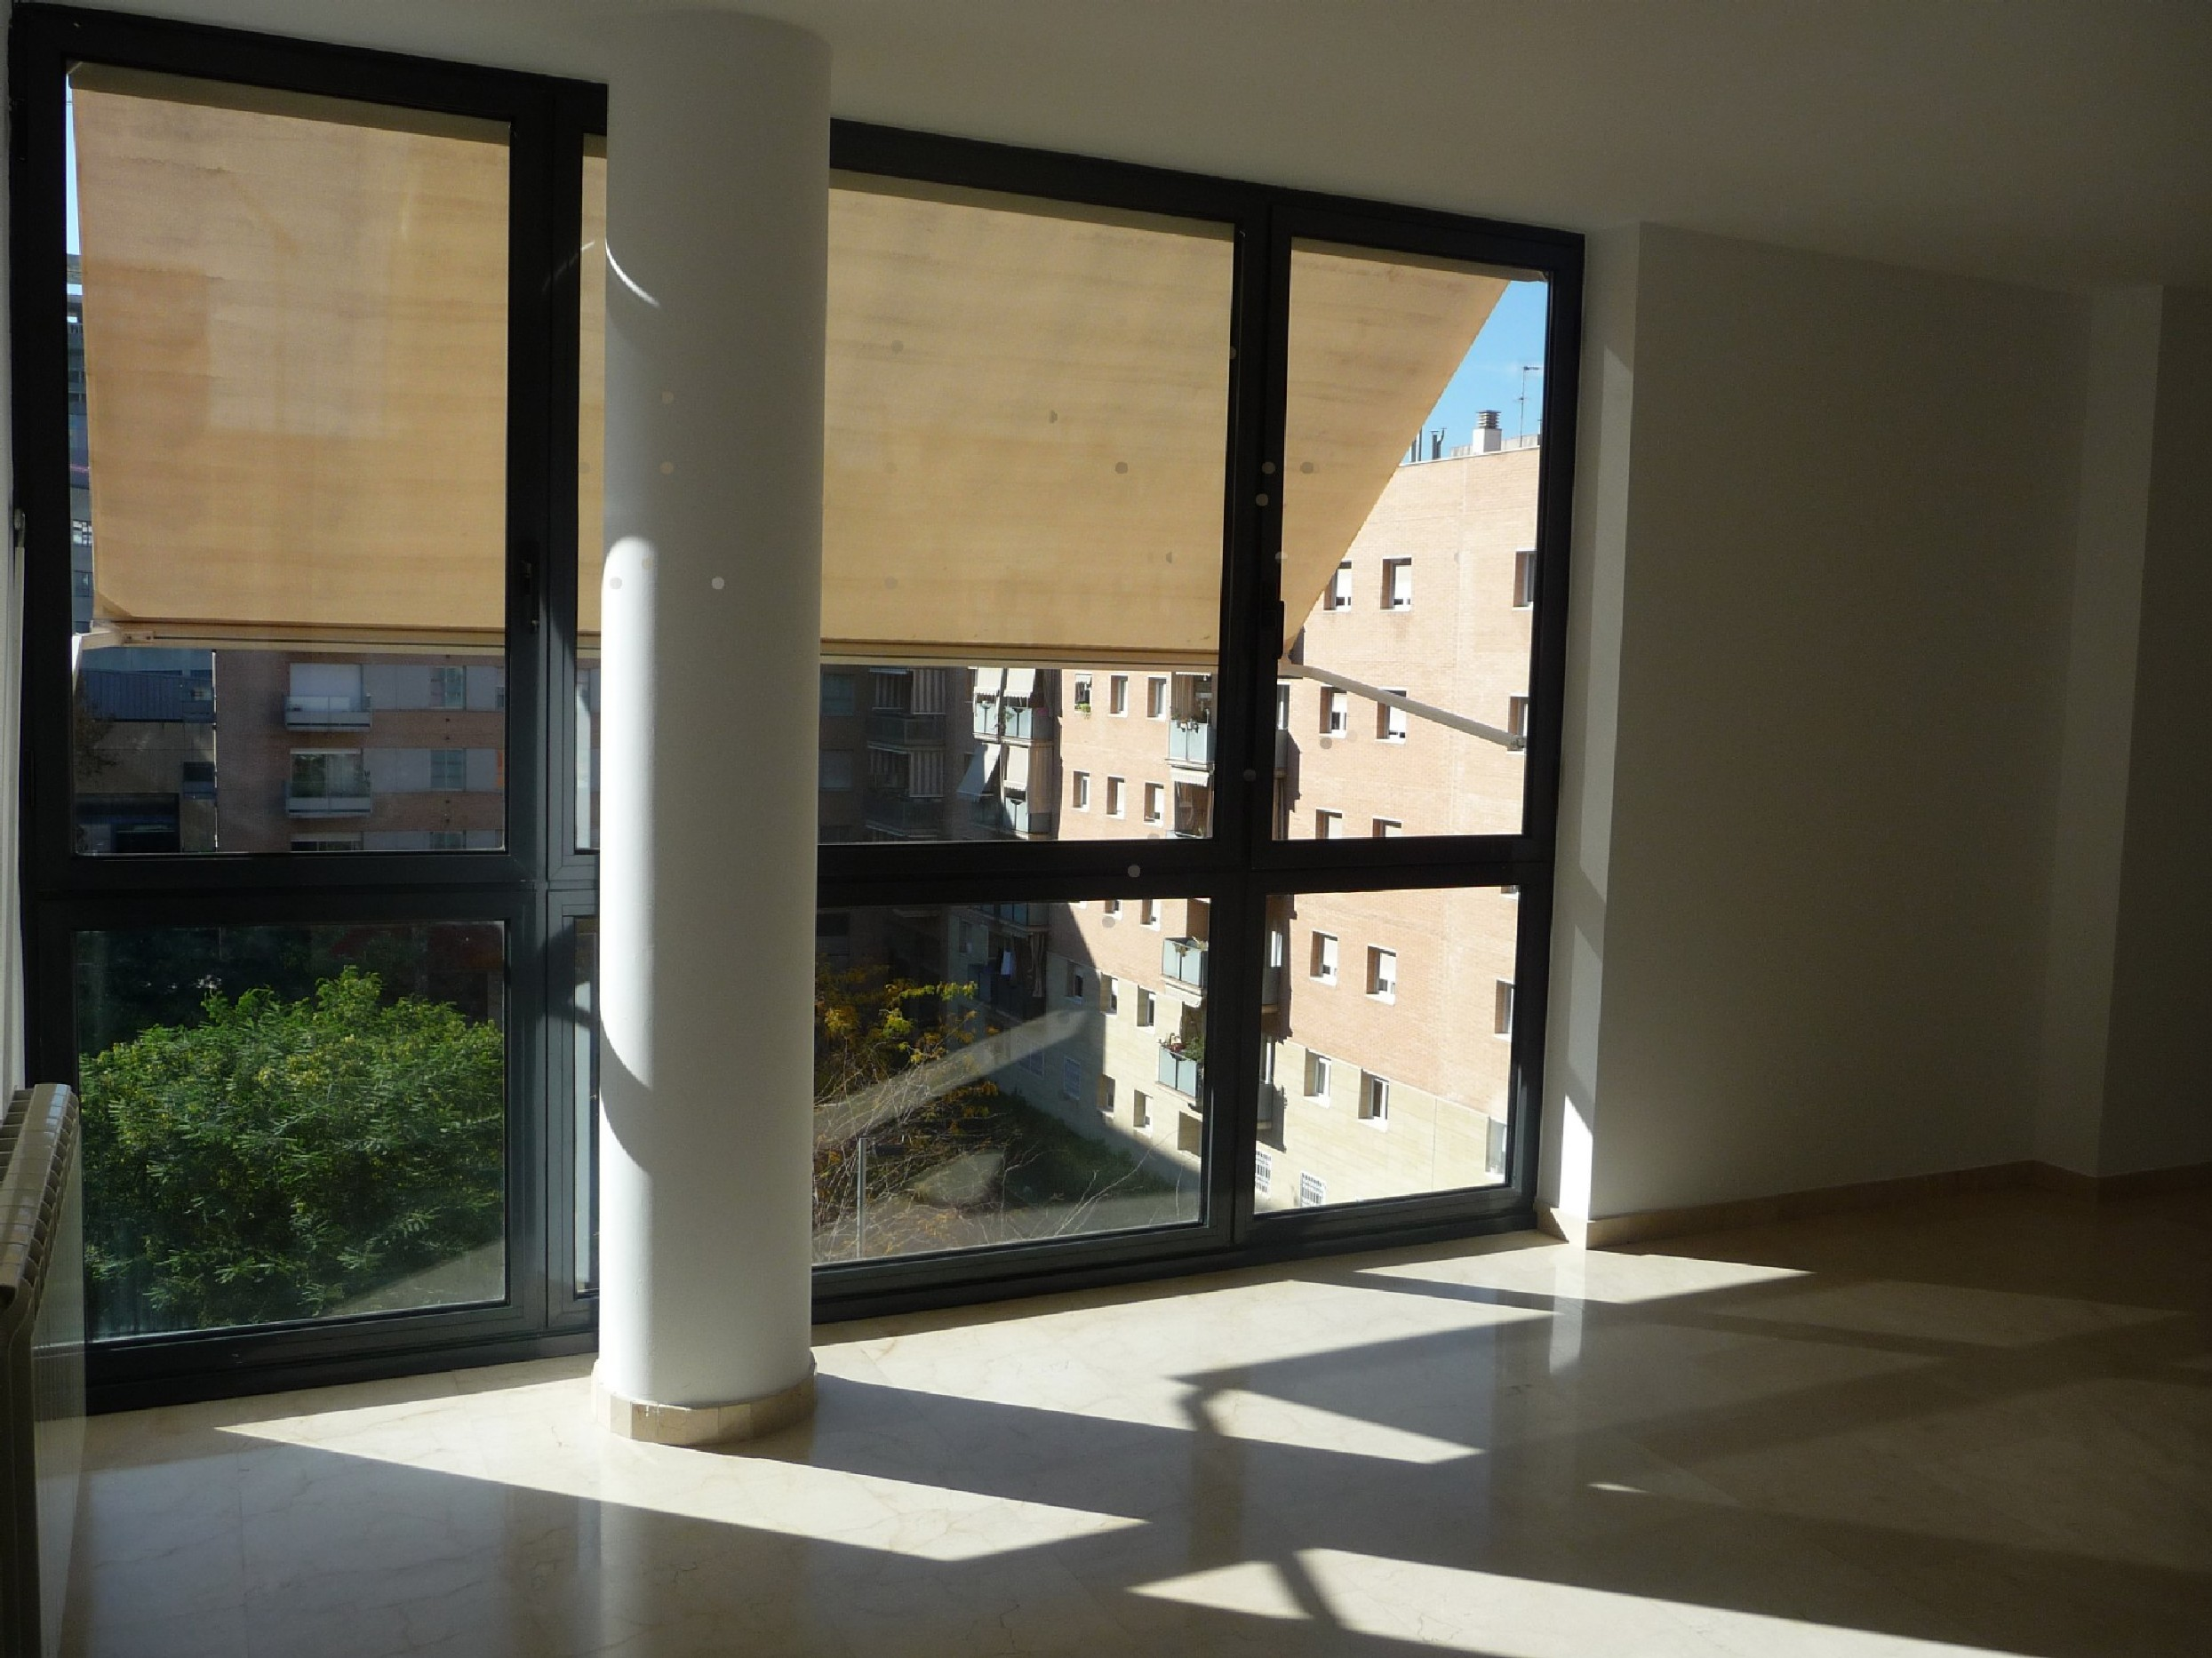 3 Bedroom Apartment For Rent With Terrace In Sant Marti Barcelona